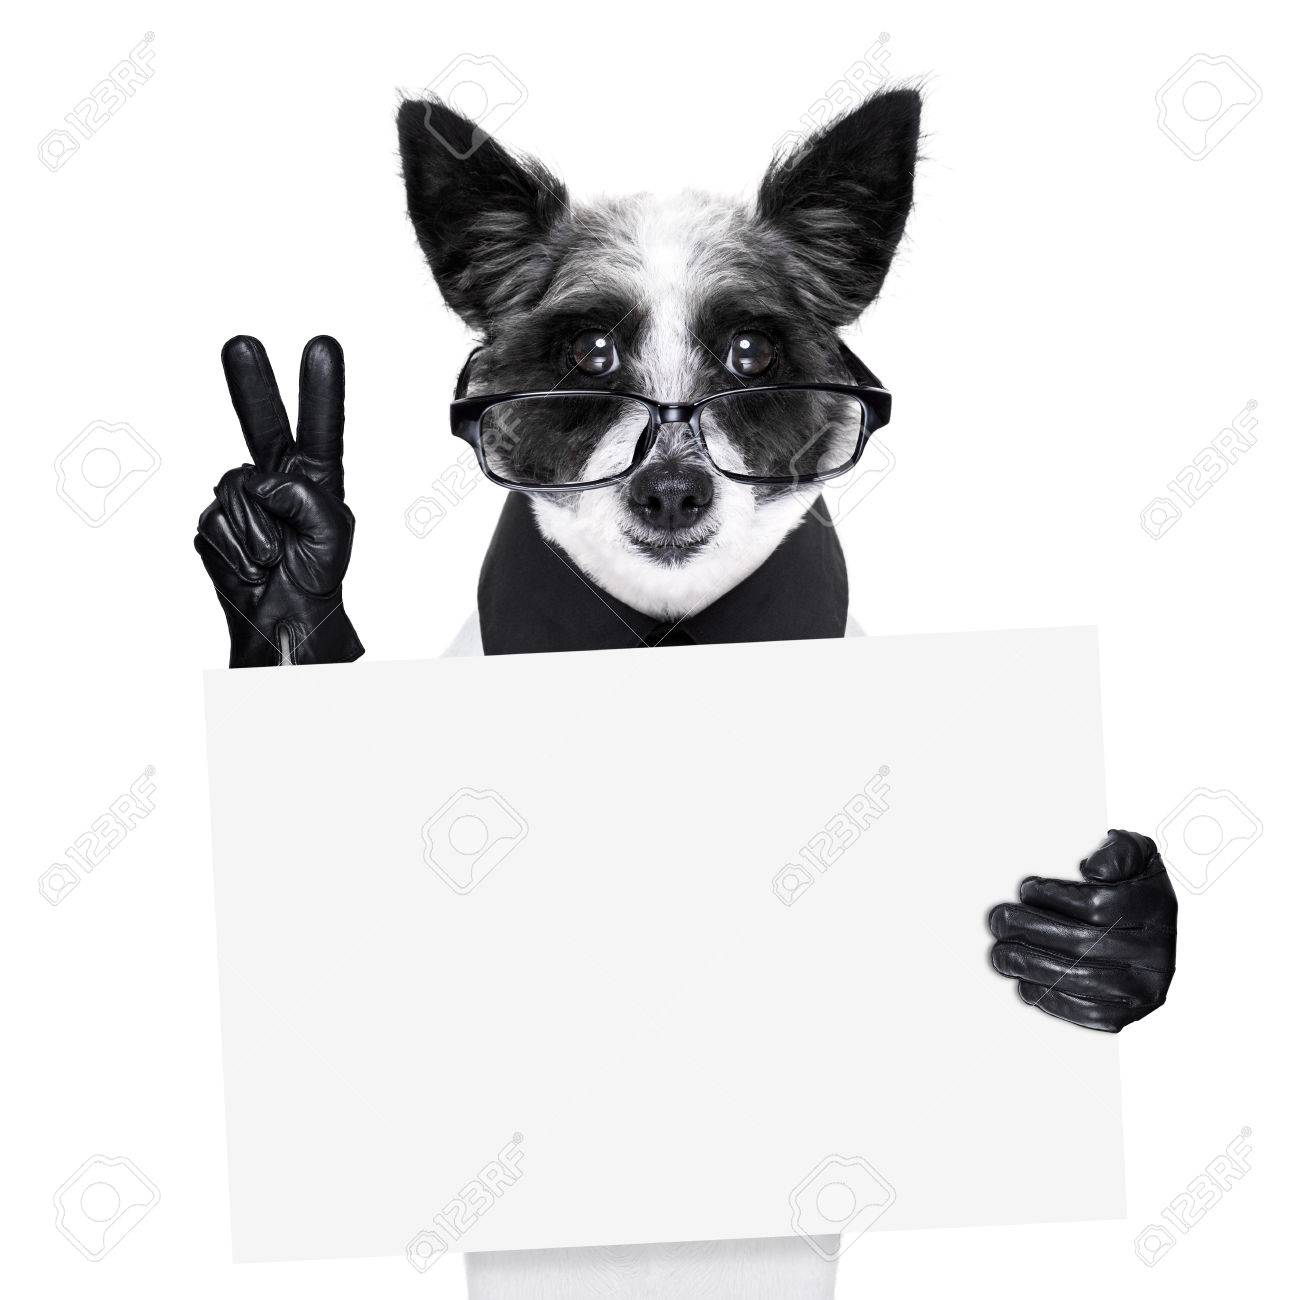 68a8684eed9a5 peace fingers dog with black gloves and glasses holding a banner Stock  Photo - 23482964